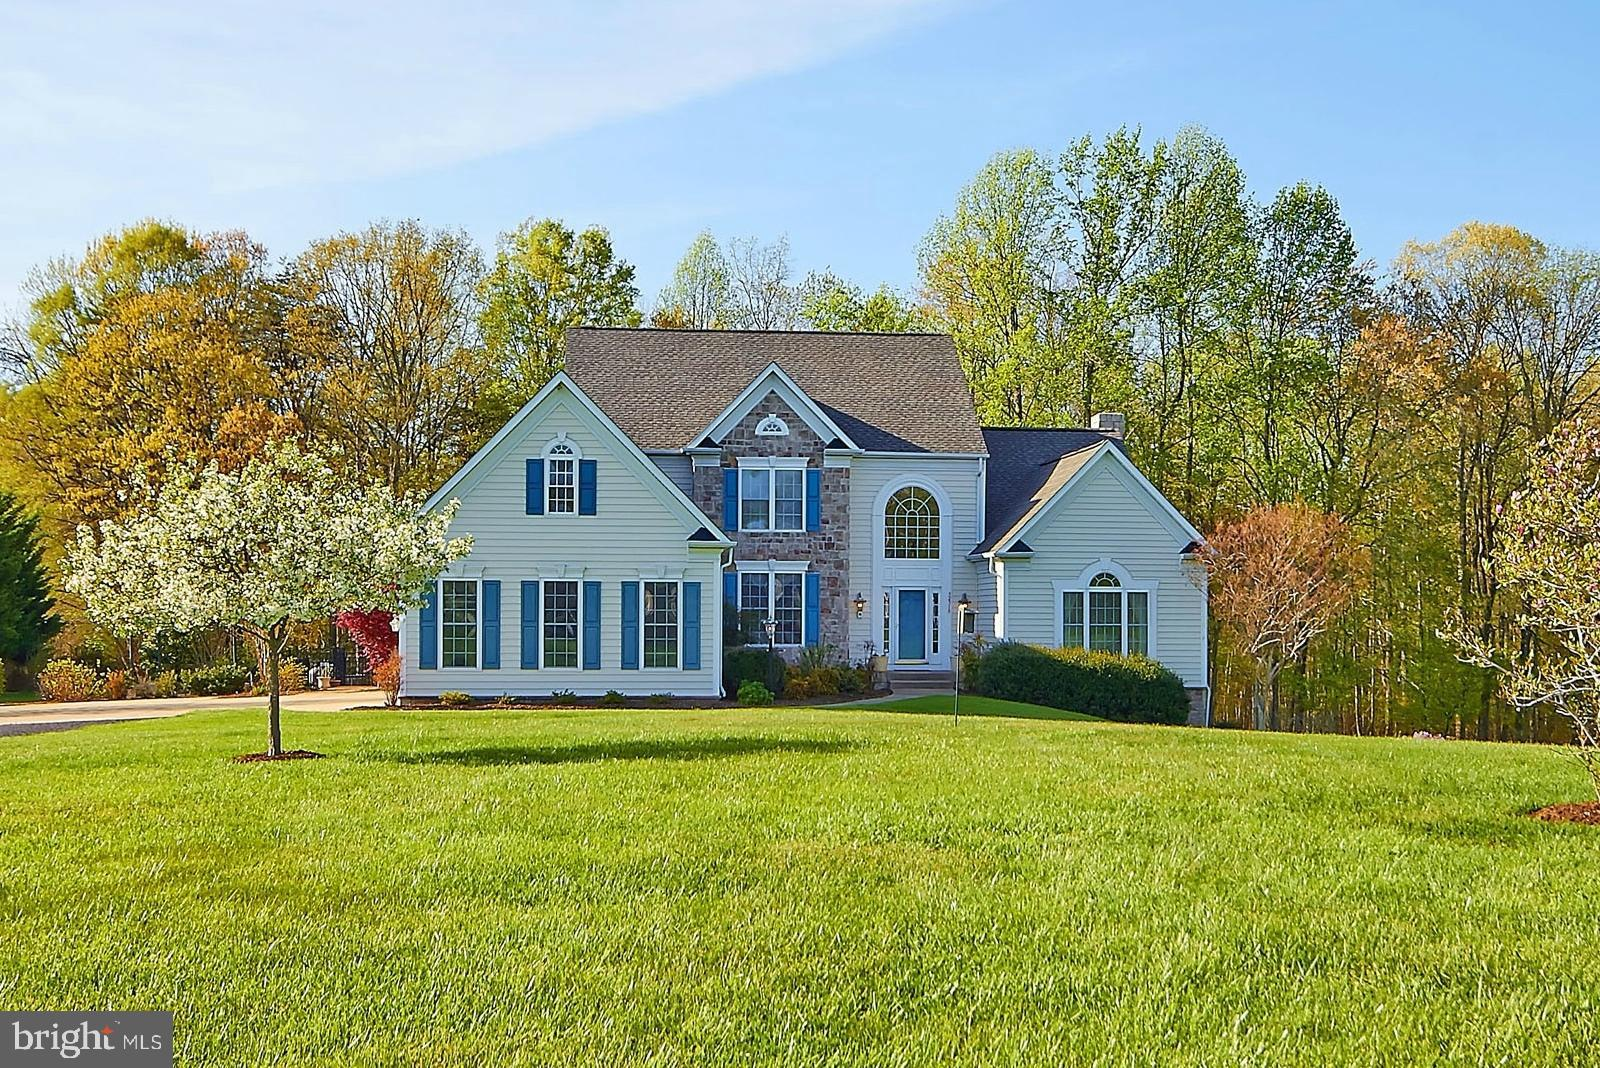 32315 DEEP MEADOW LANE, LOCUST GROVE, VA 22508